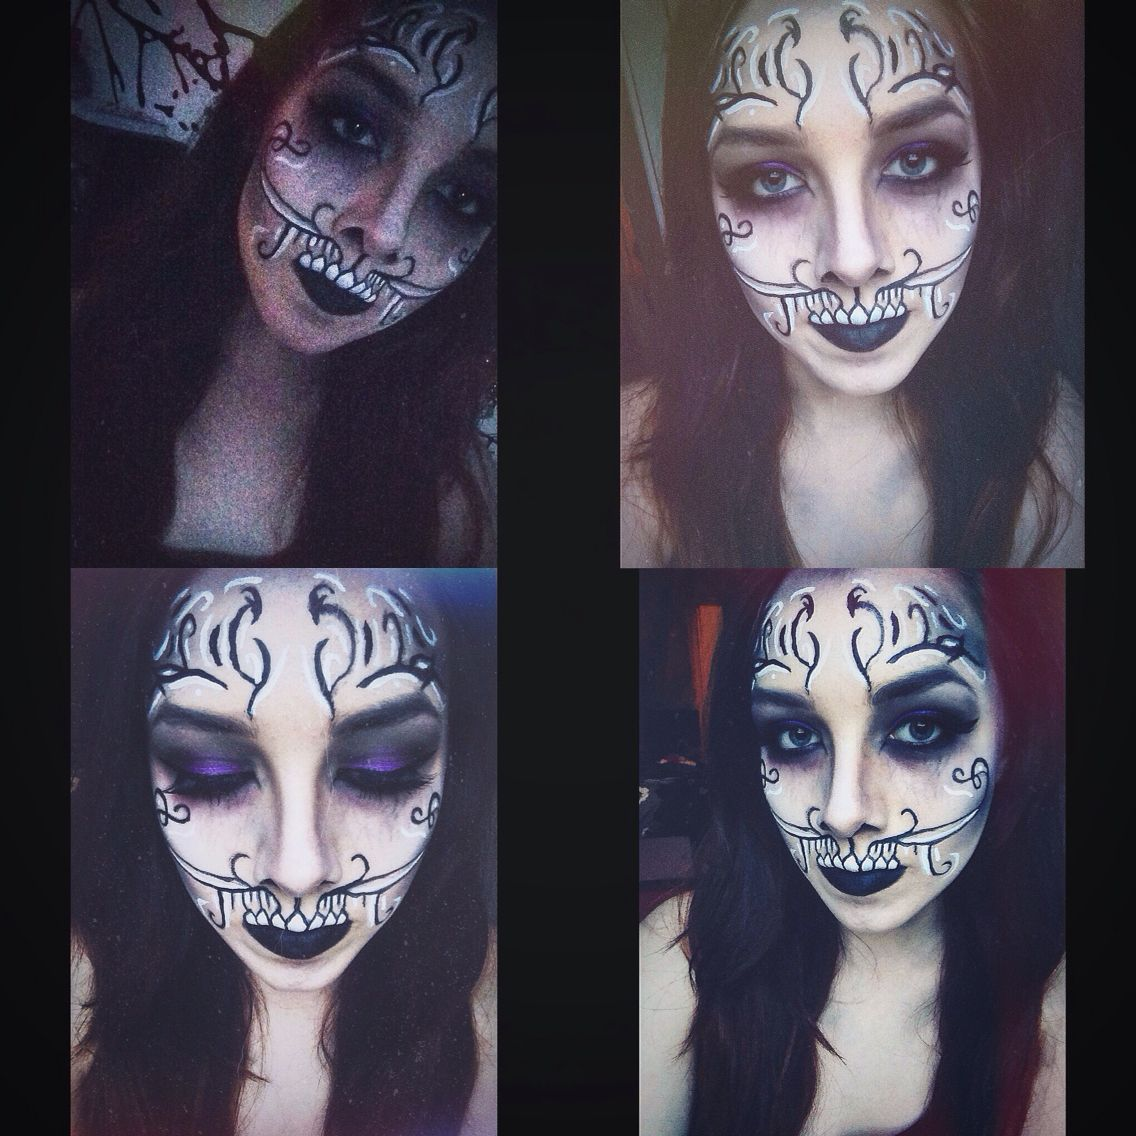 Death makeup inspired by Klairedelys and Kristin and PC Casts House of Night series